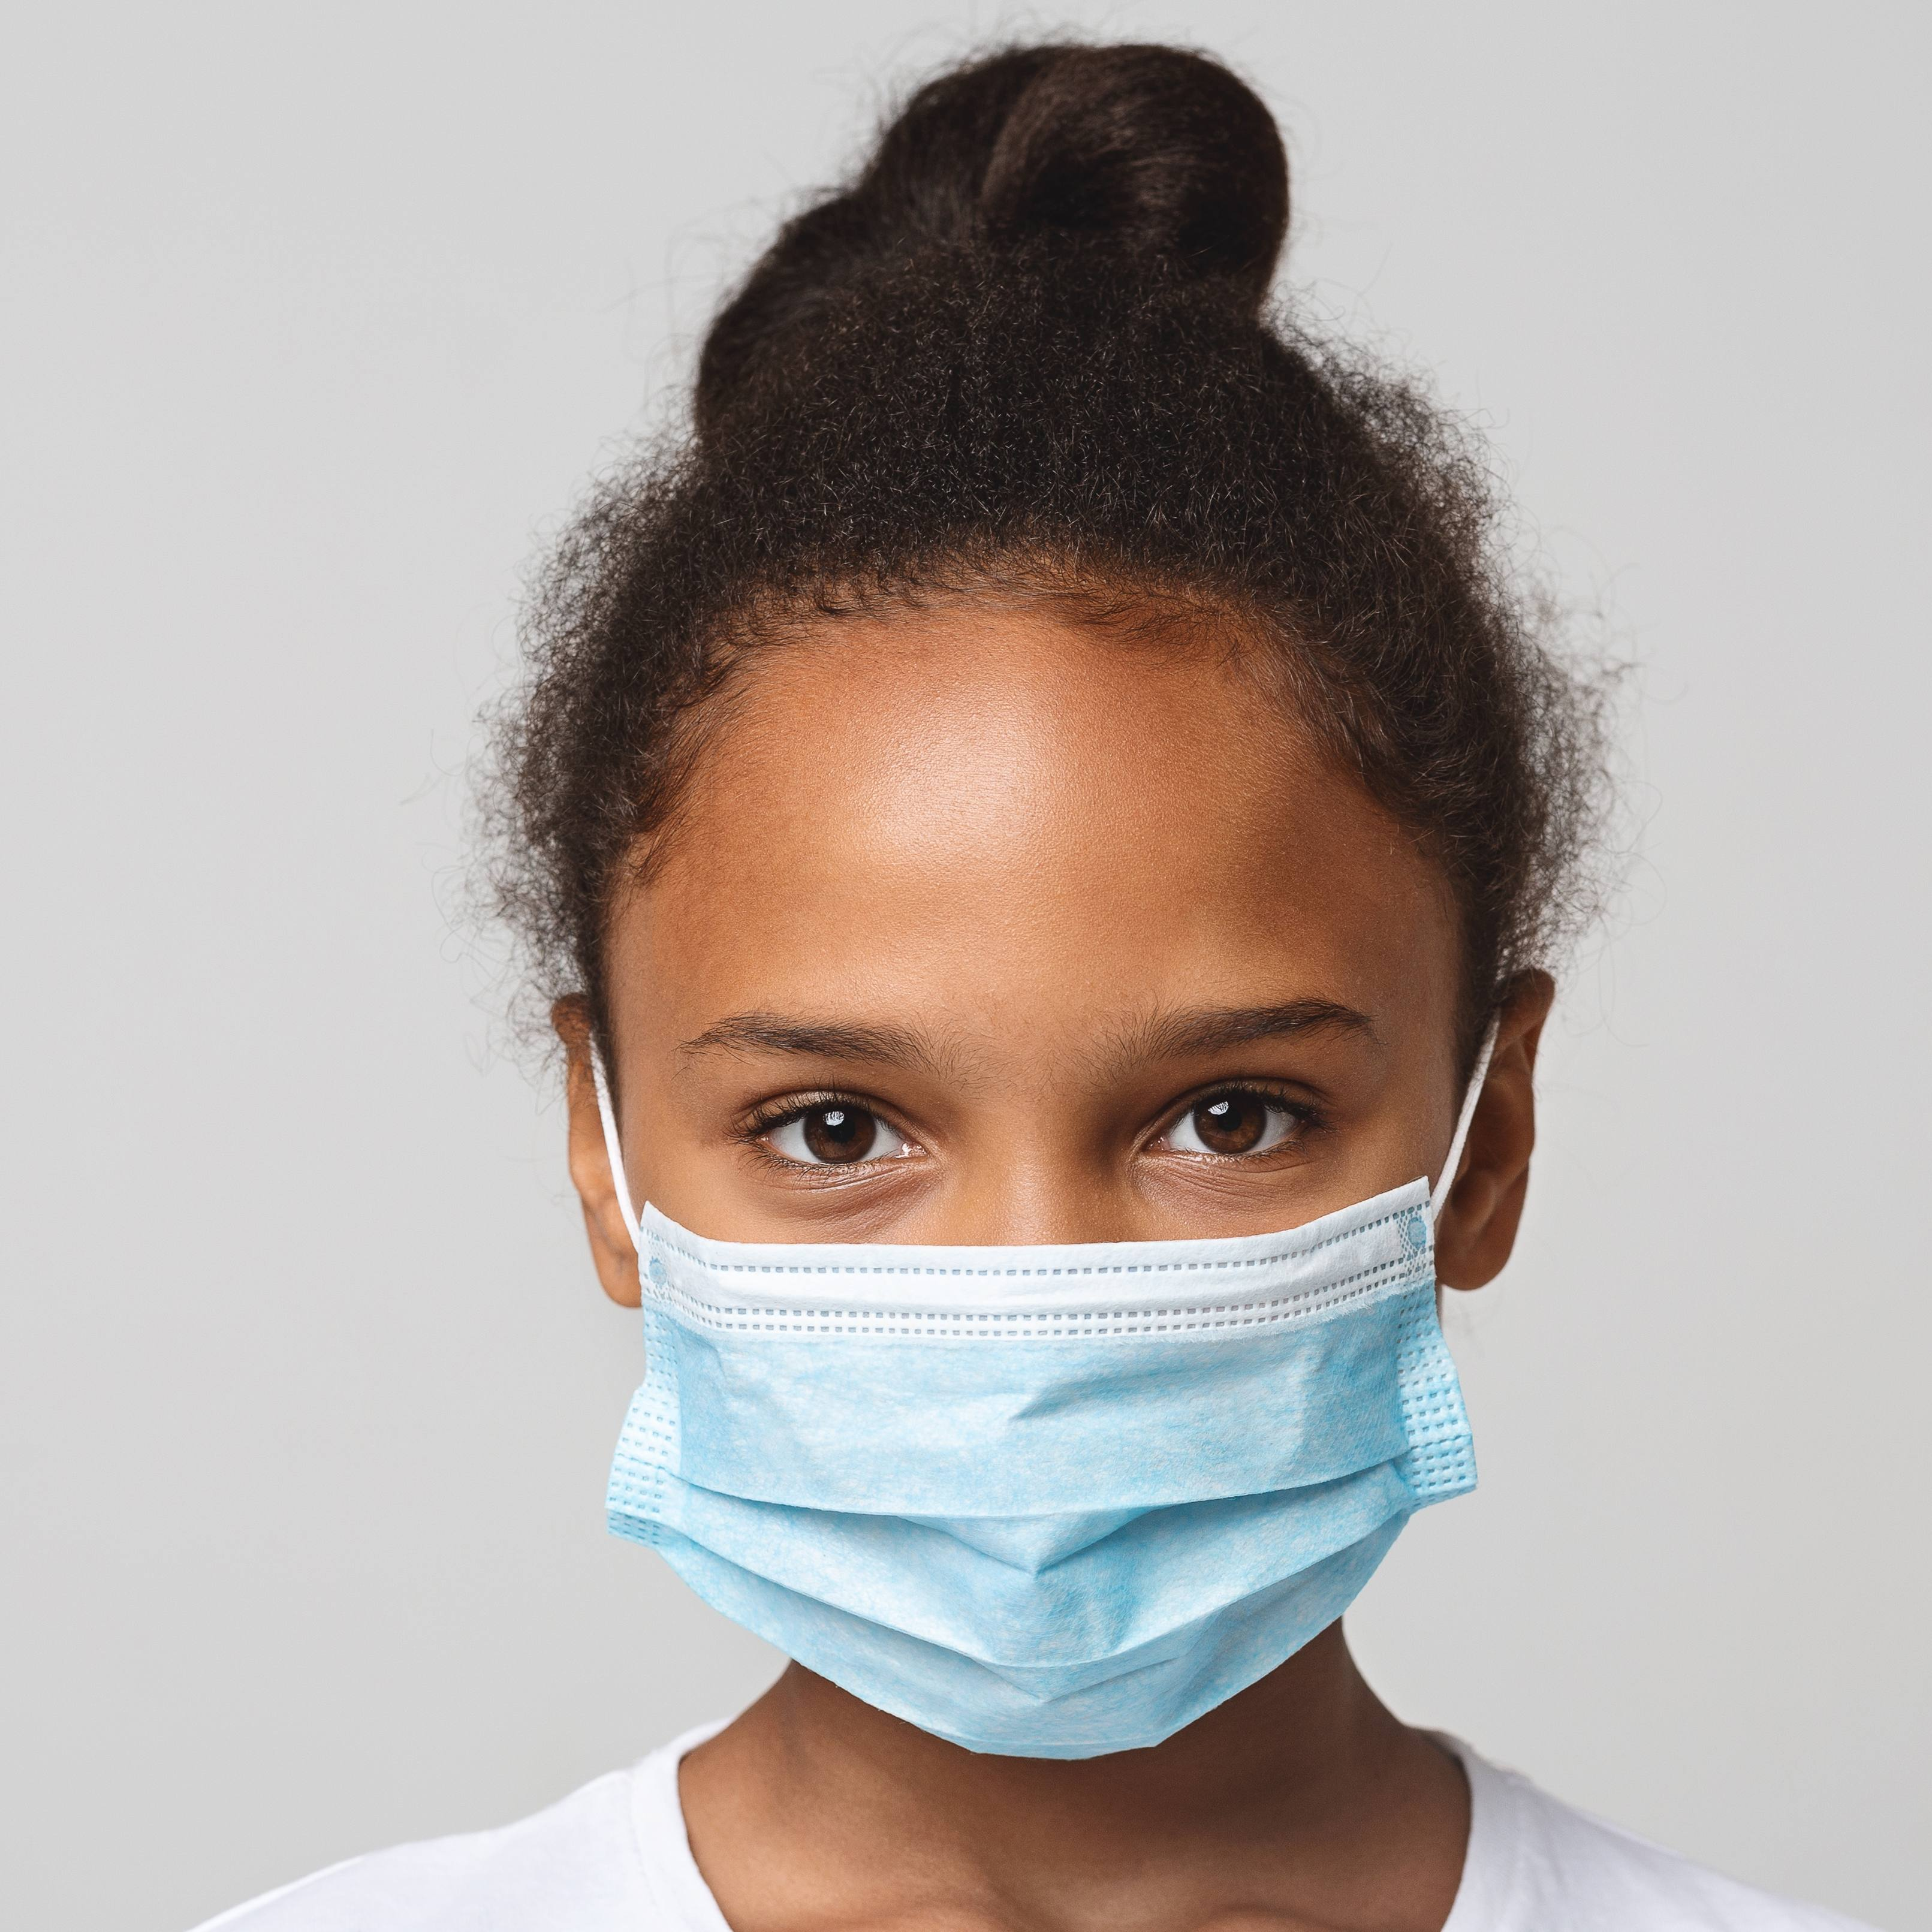 a little Black school-aged girl with a plain white background and wearing a face mask